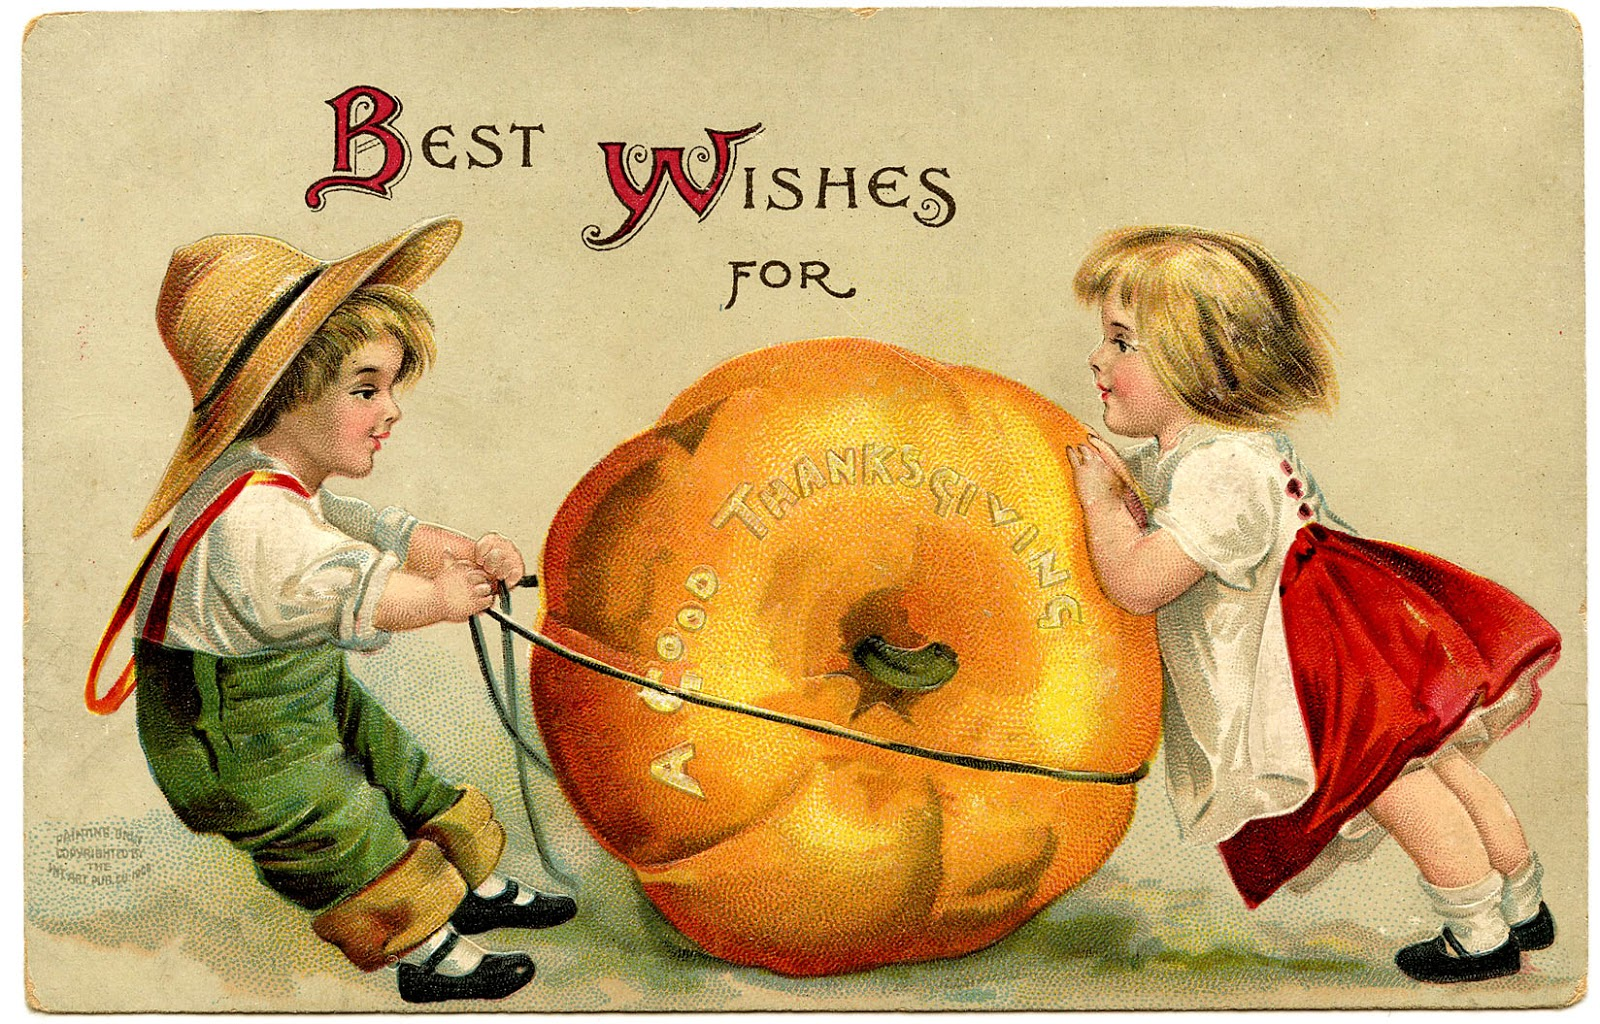 Vintage Thanksgiving Image - Cute Kids with Pumpkin - The ...